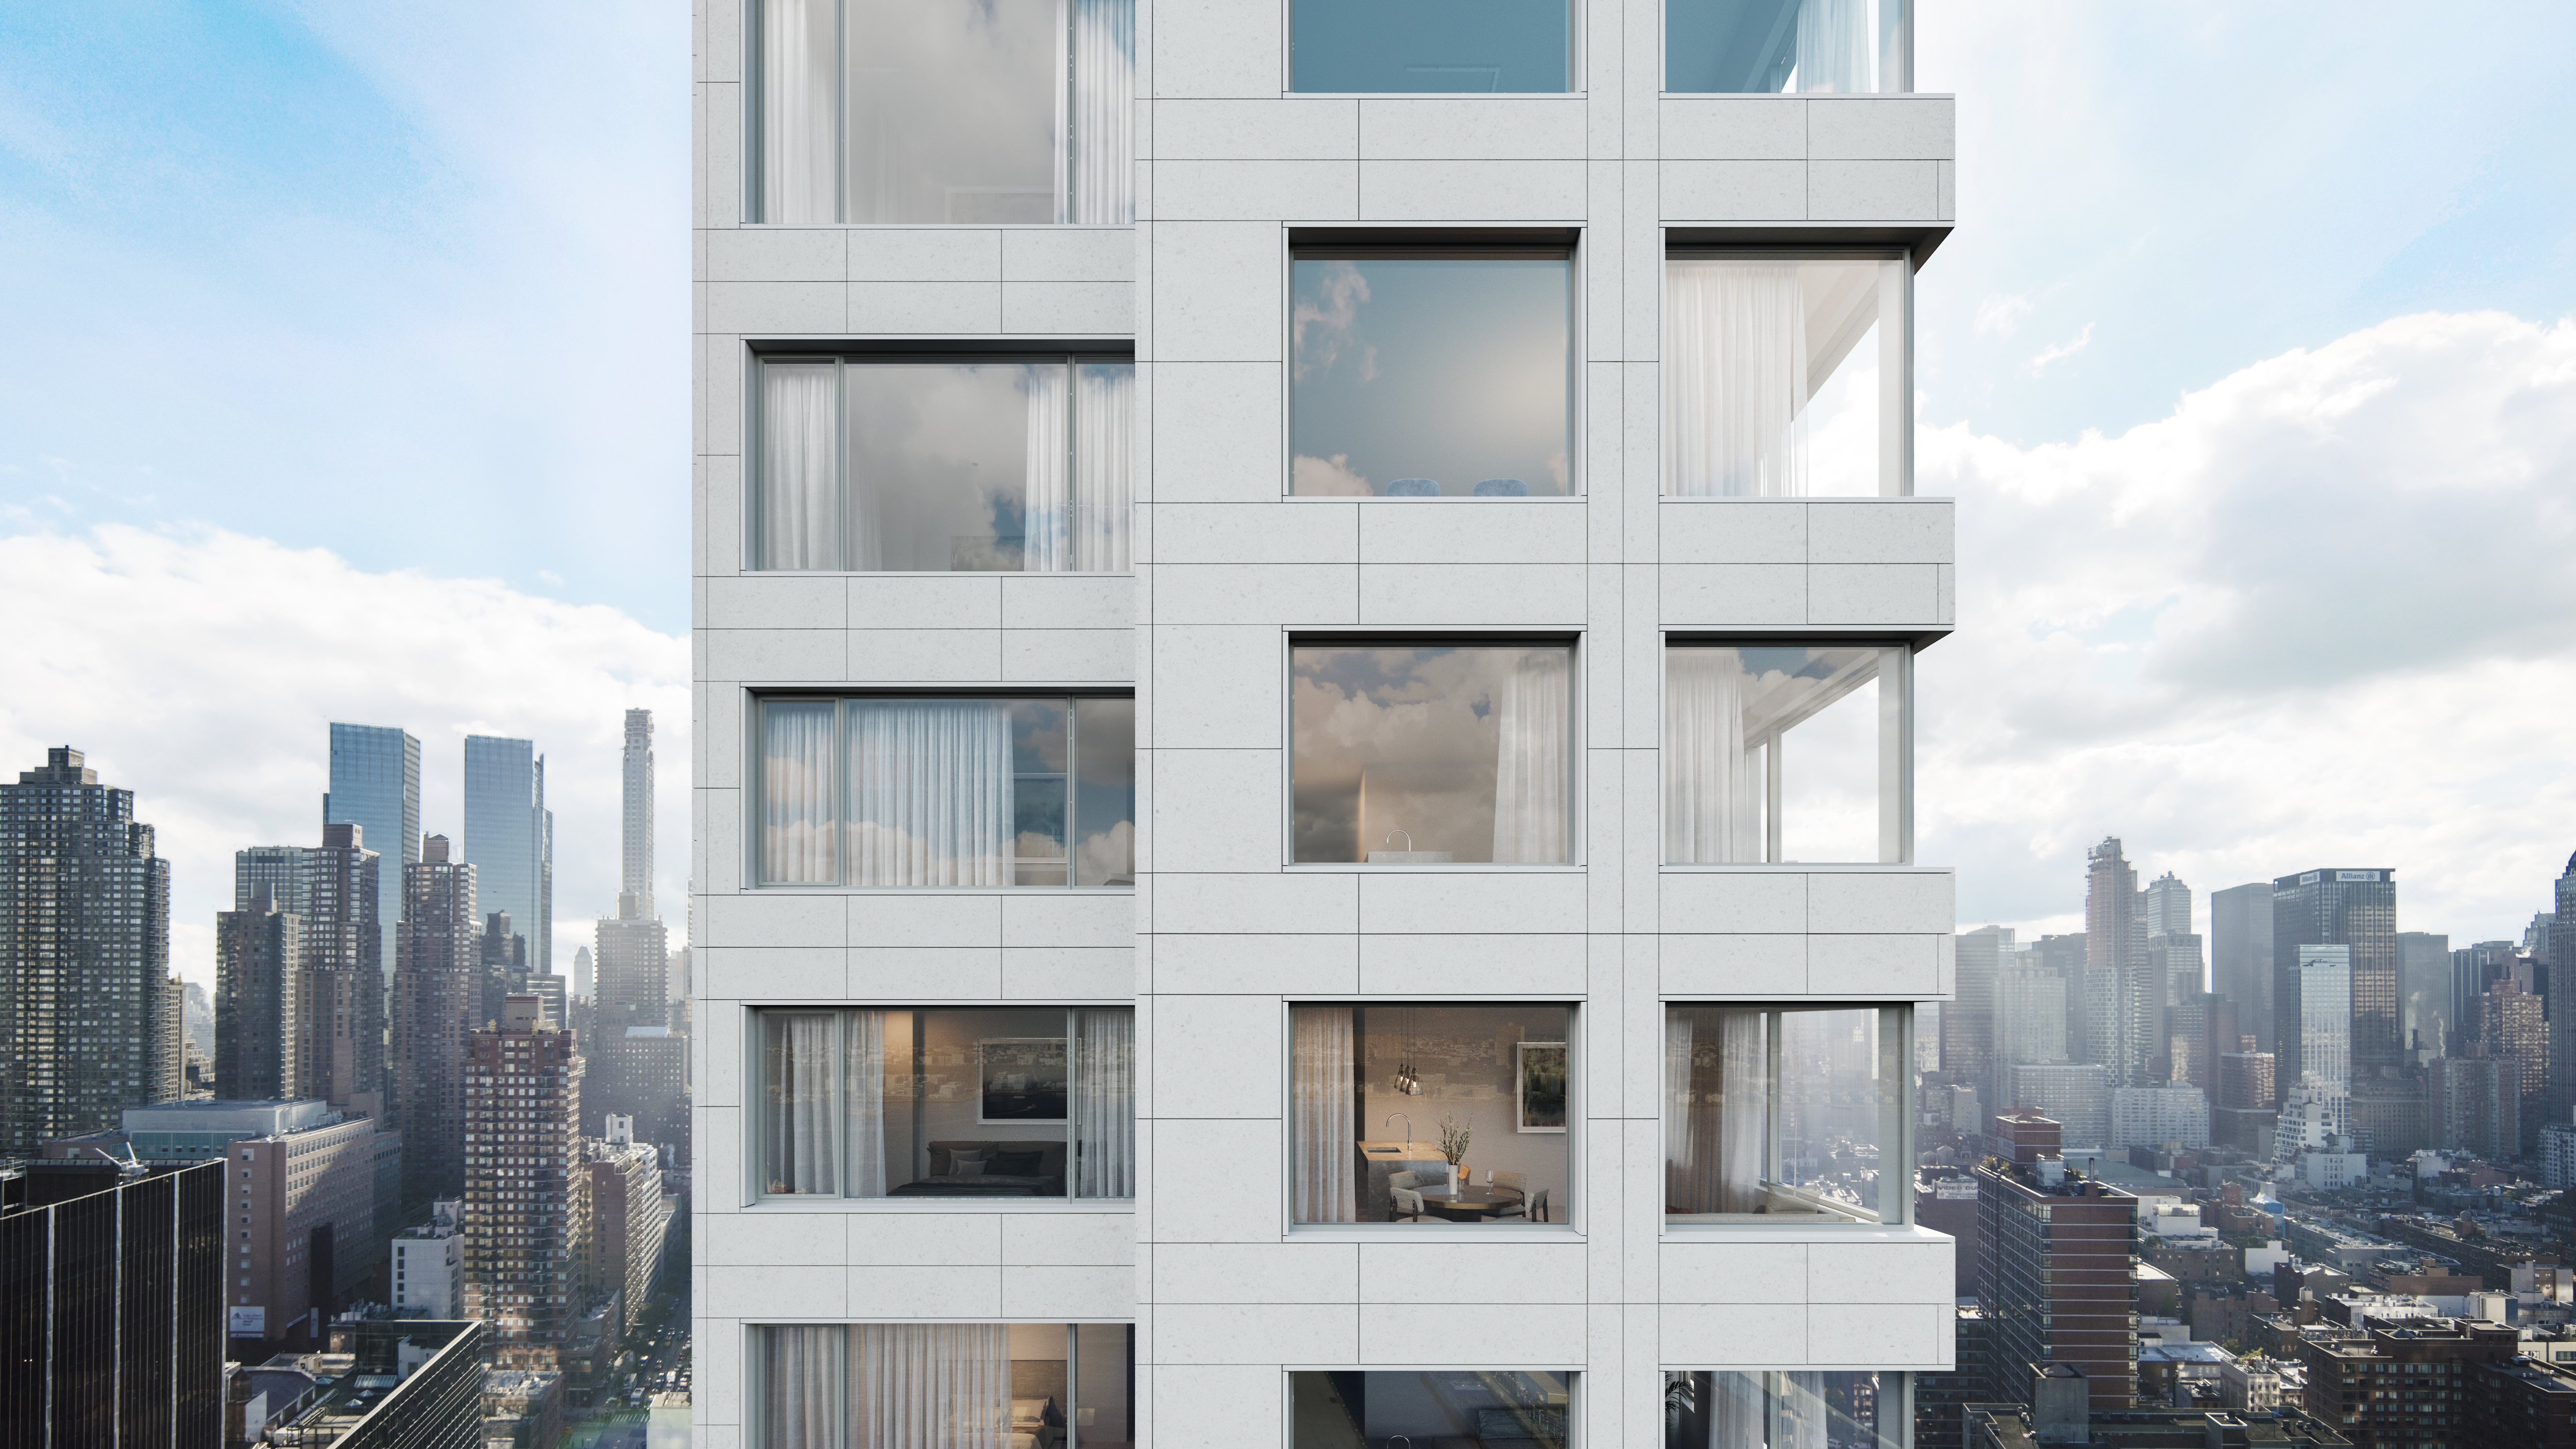 Pritzker Prize winner Alvaro Siza's first NYC building will launch sales this fall